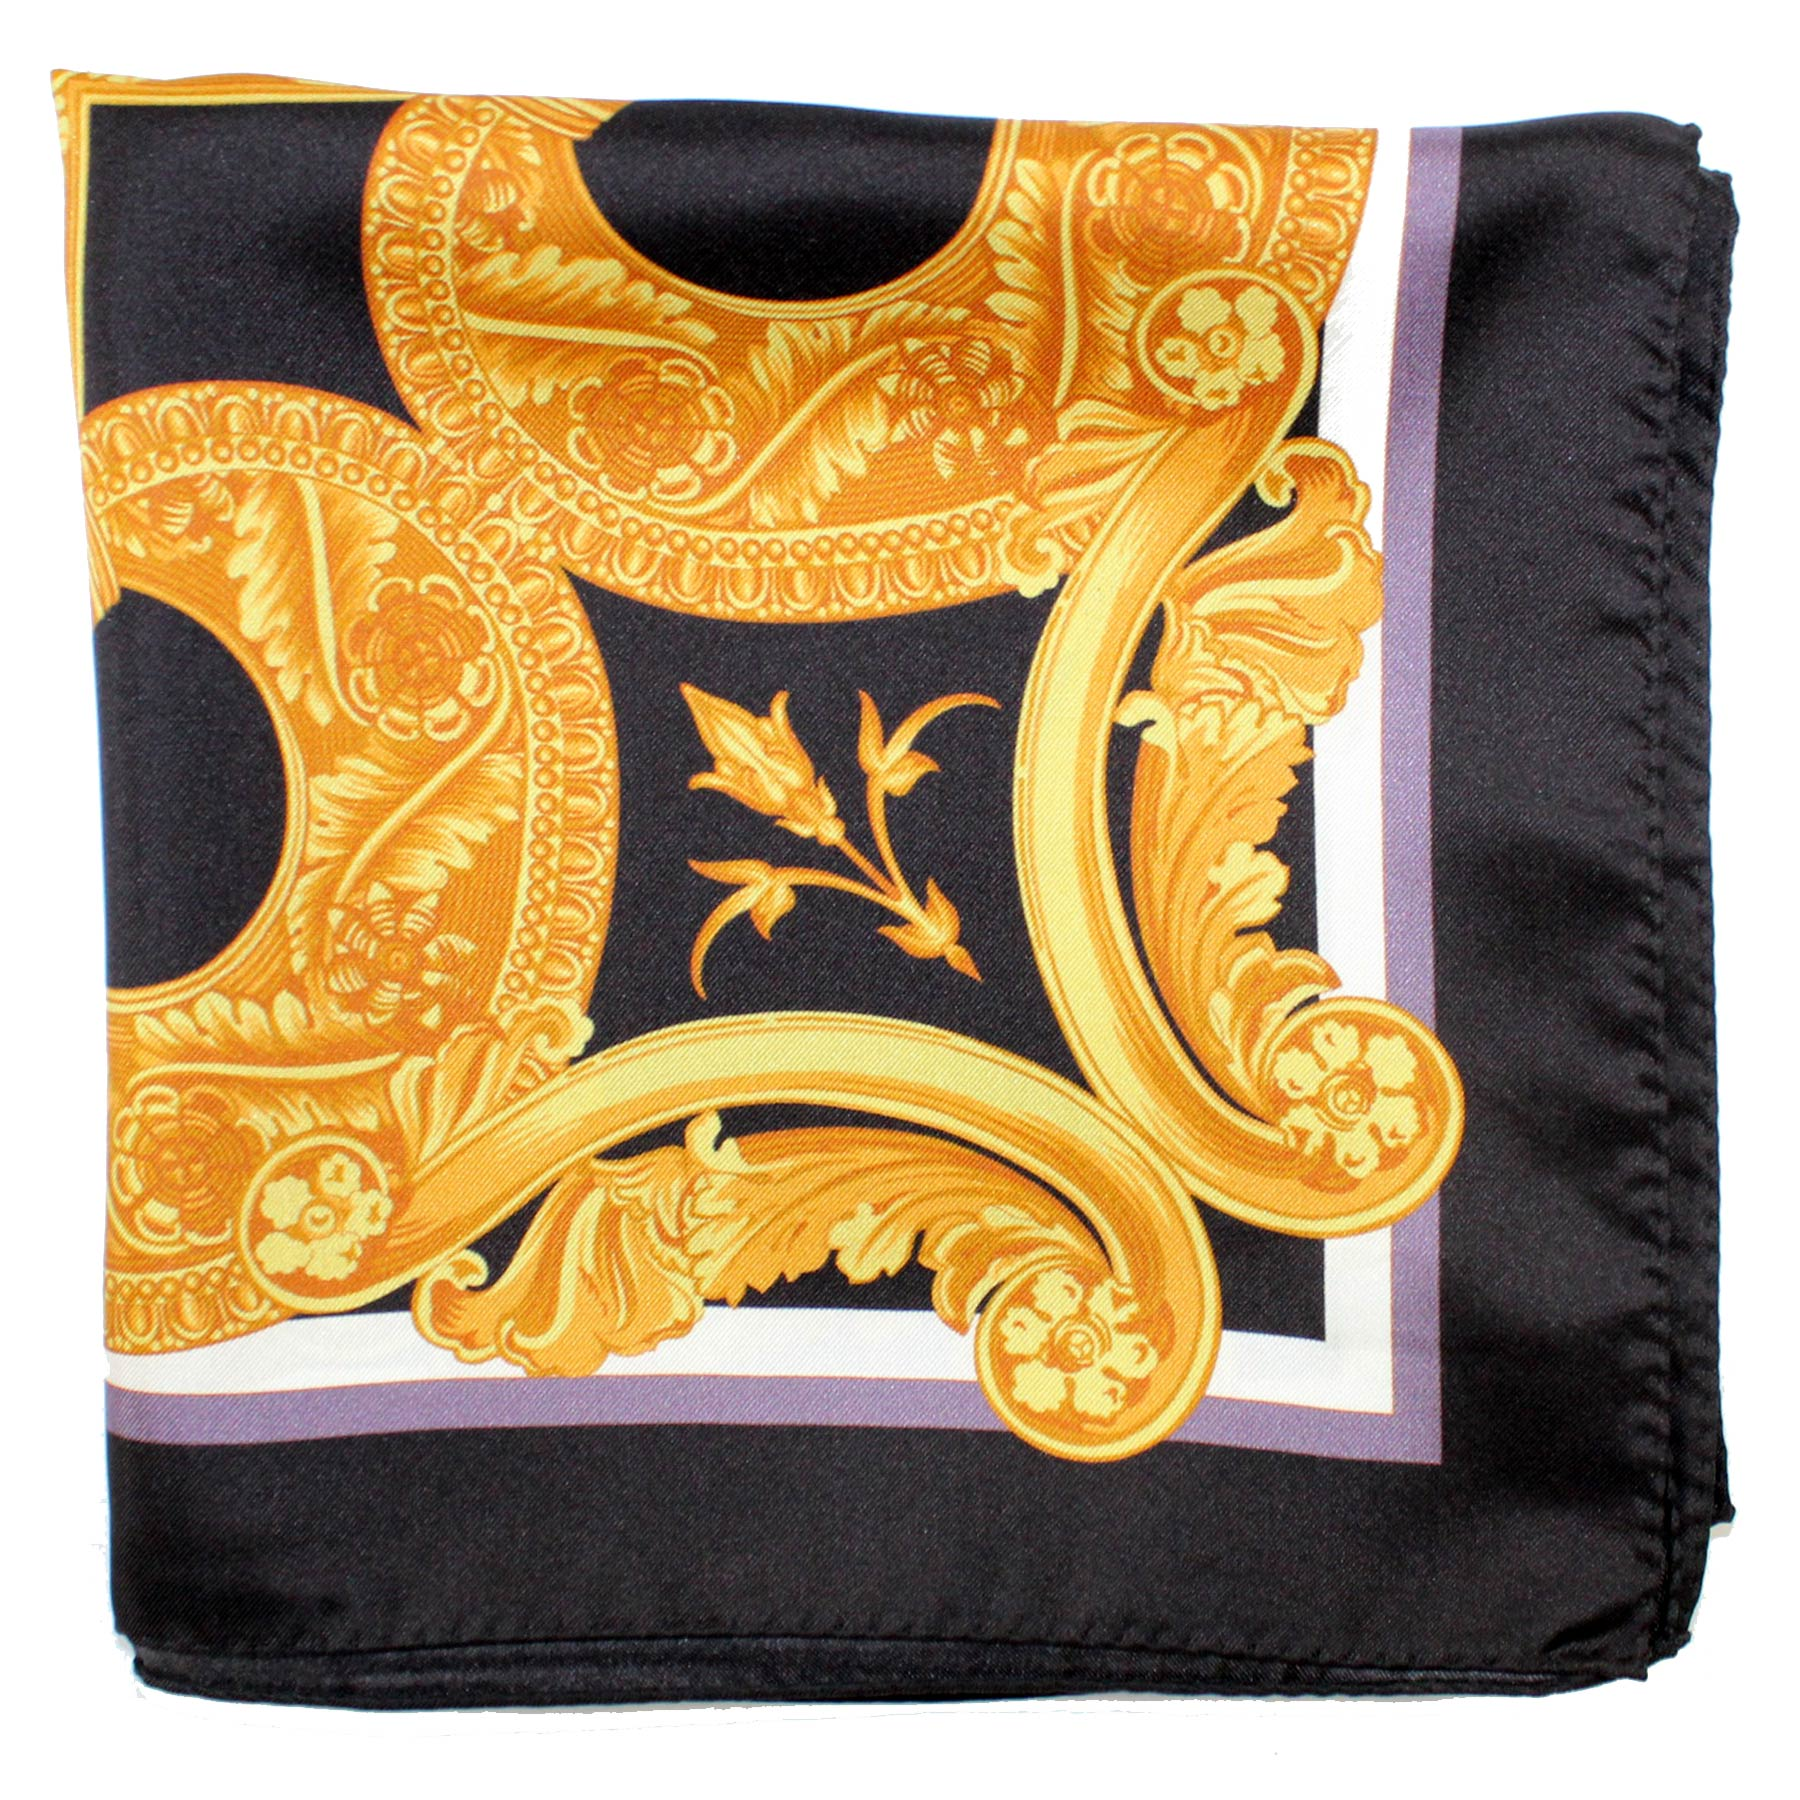 Versace Scarf Black Brown Gold Baroque Square Scarf